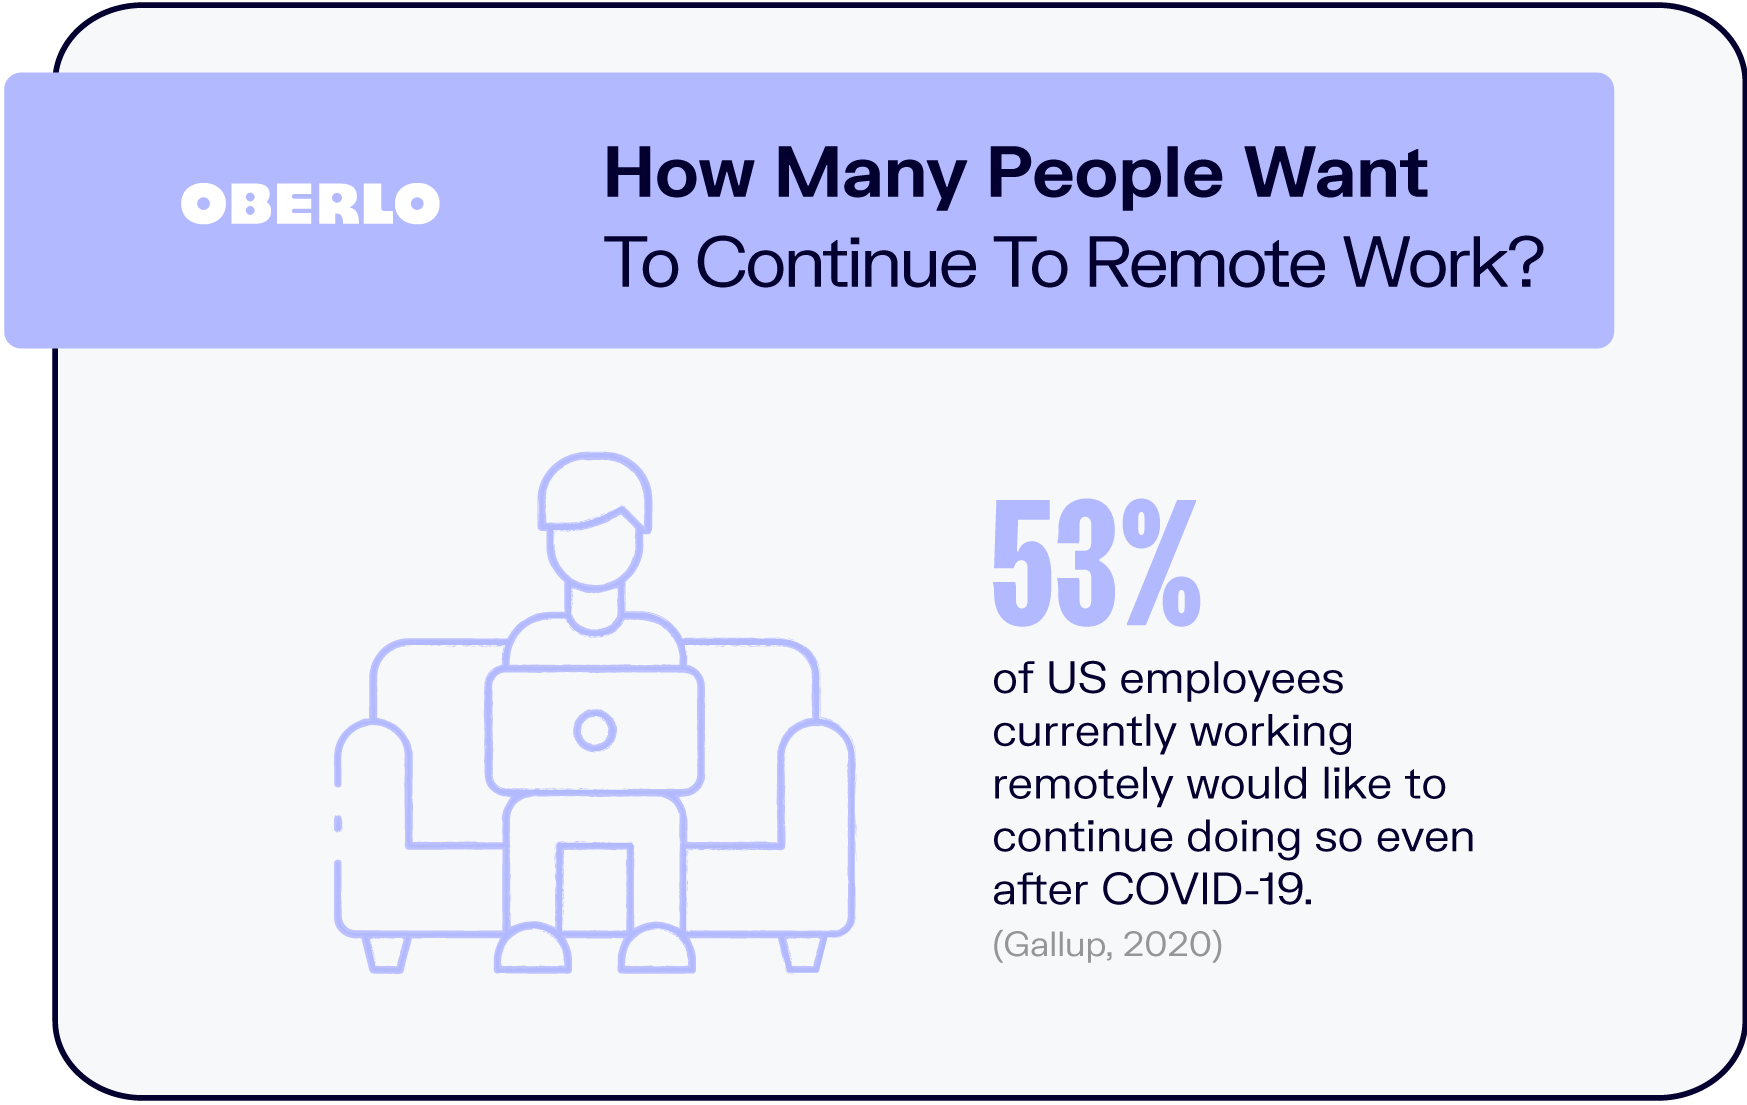 How Many People Want To Continue To Remote Work?